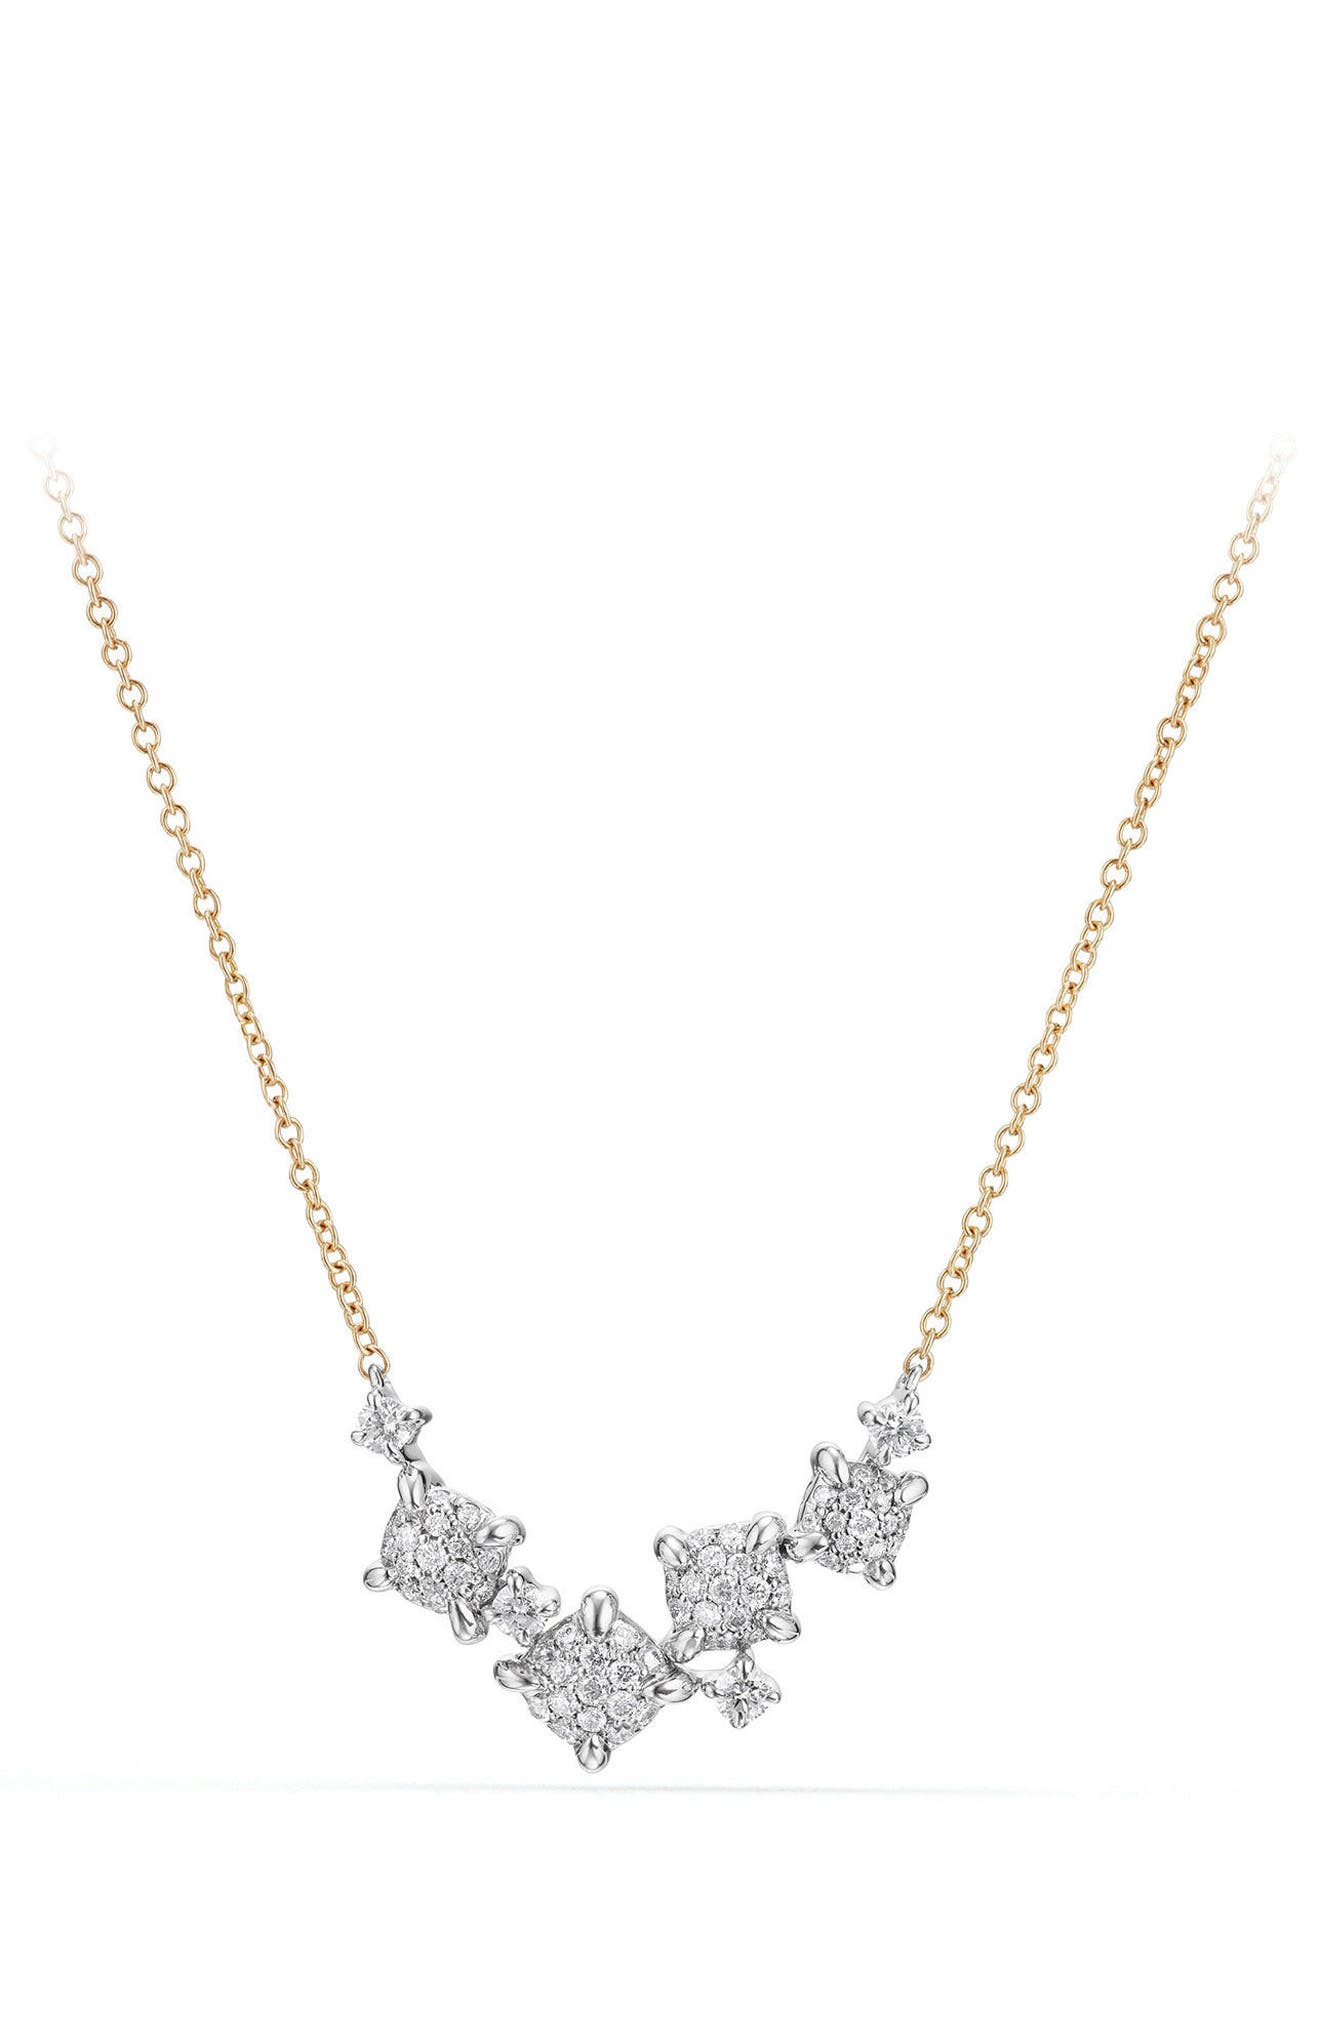 Precious Châtelaine Necklace with Diamonds in 18K Gold,                             Main thumbnail 1, color,                             Yellow Gold/ Diamond